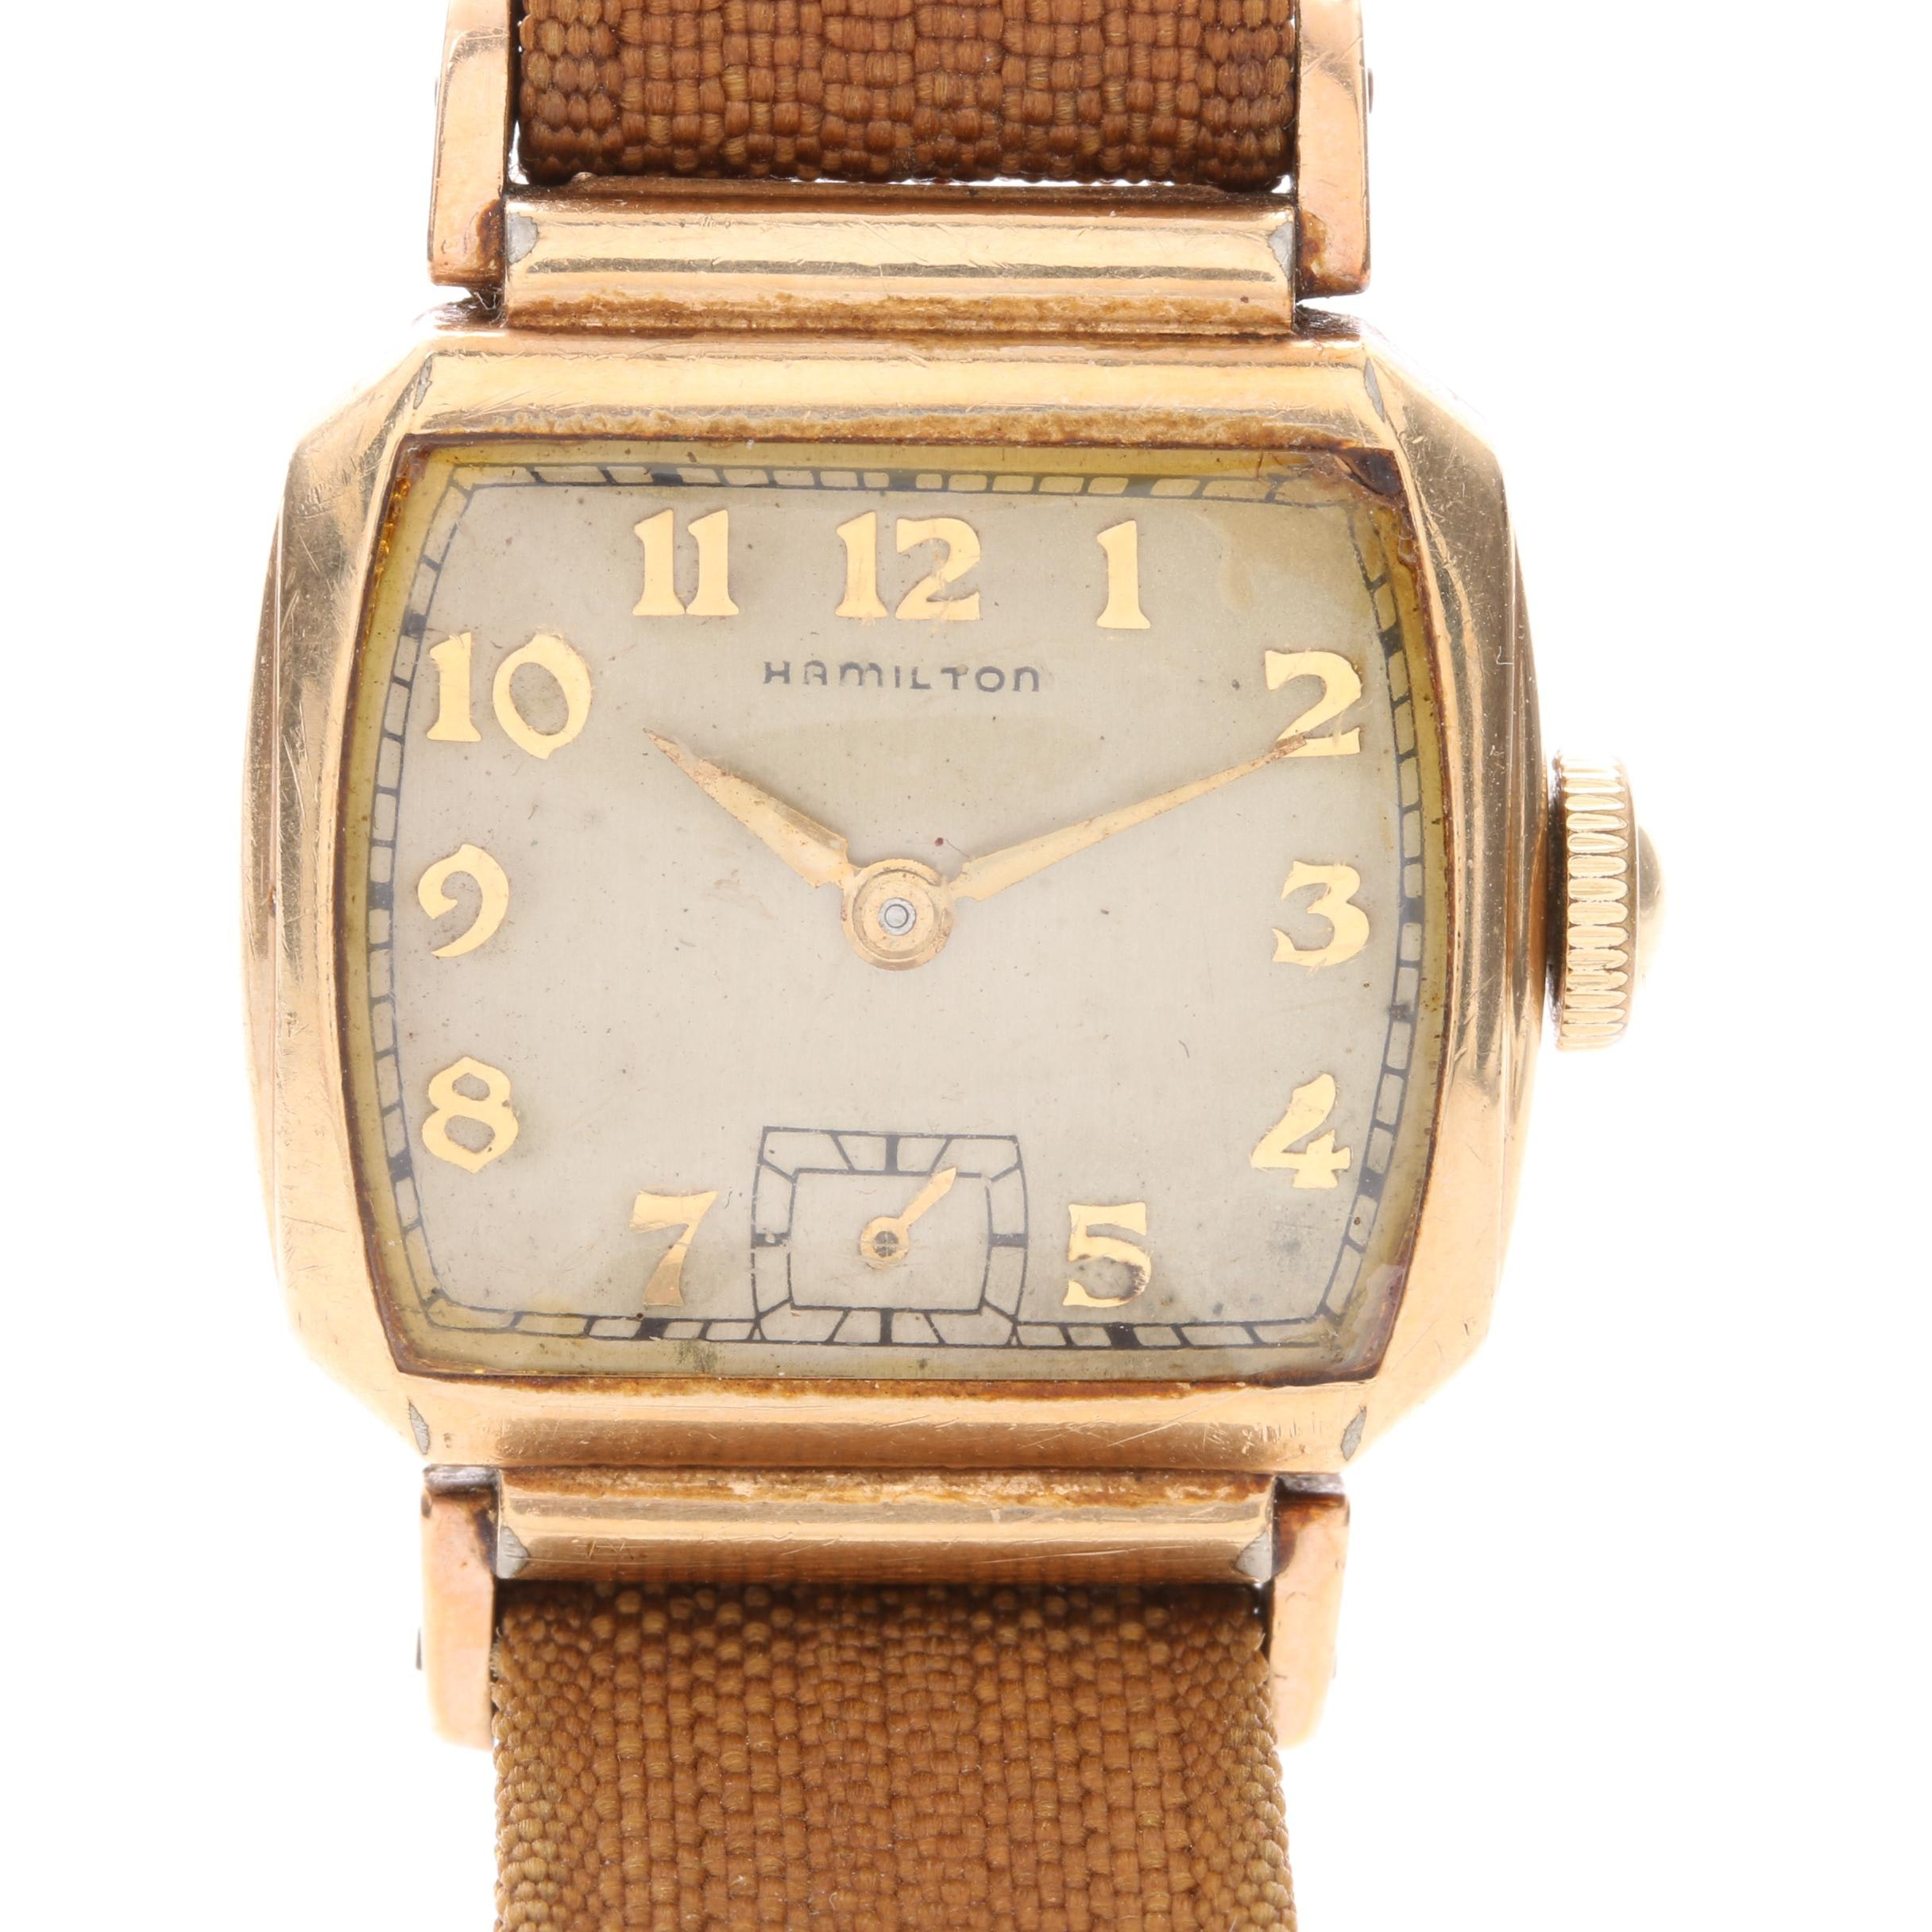 Hamilton 10K Gold-Filled Square Dial Watch with Nylon Strap